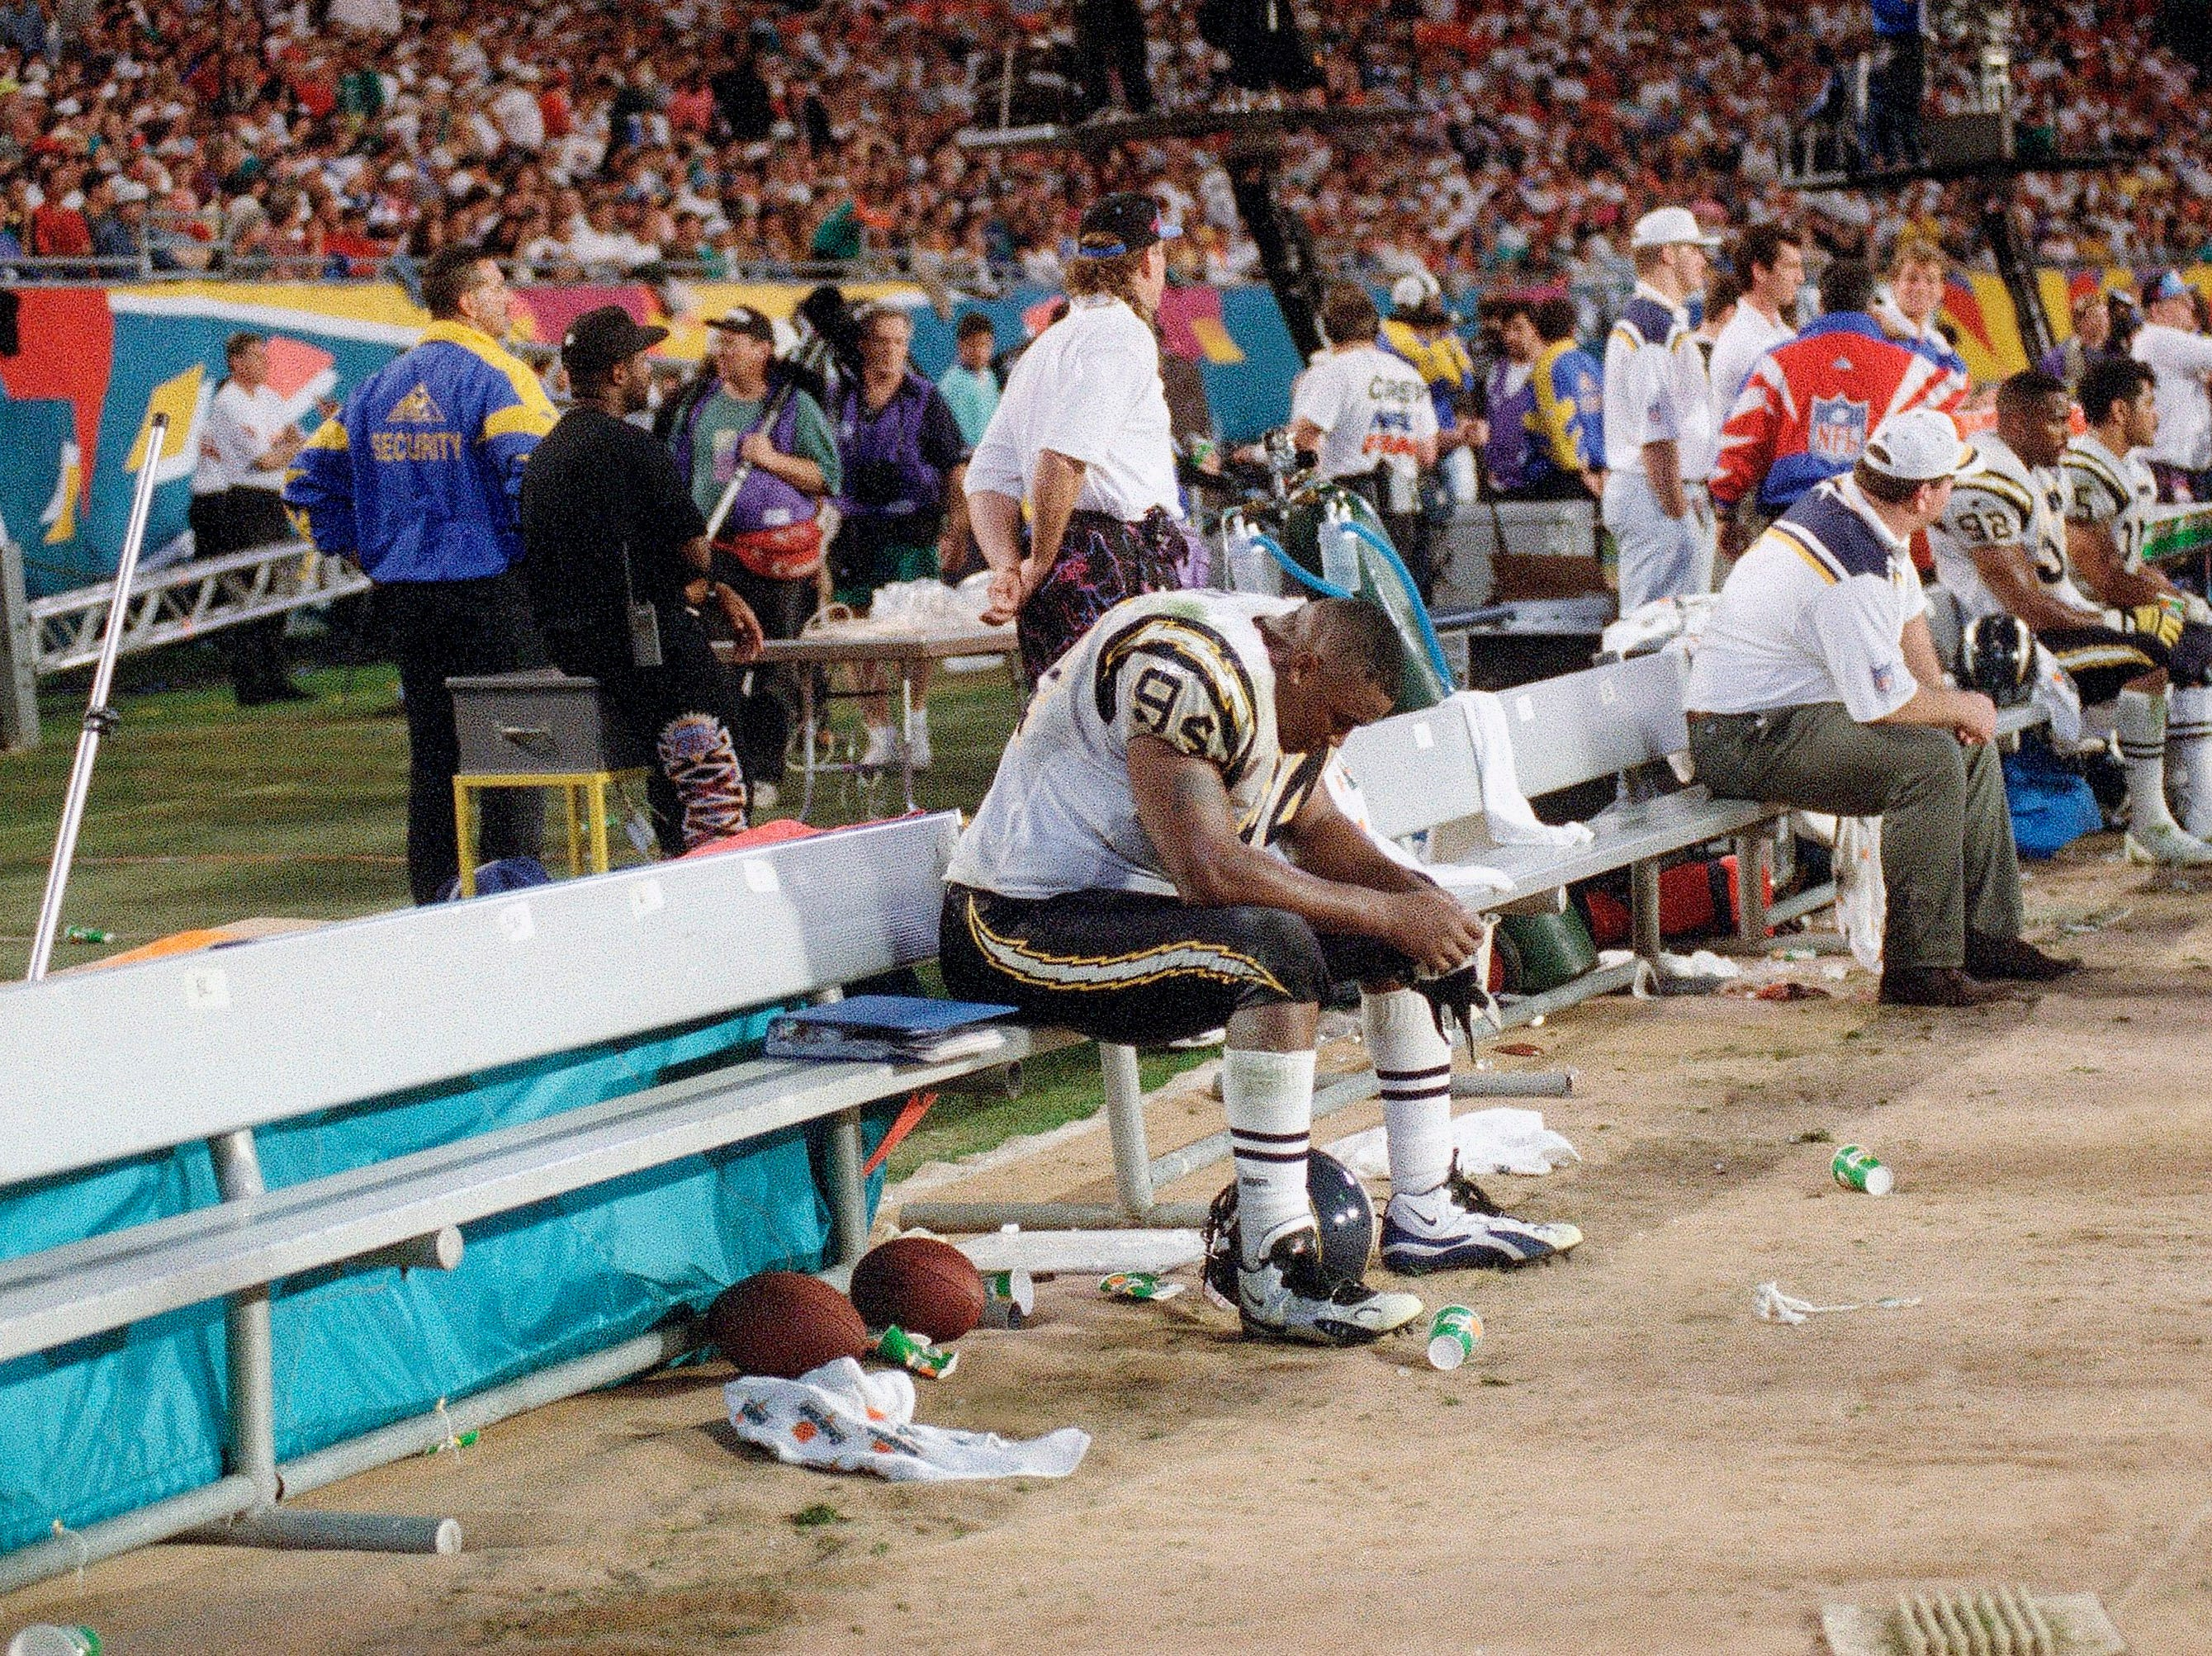 San Diego Chargers Chris Mims sits dejectedly on the bench during his team's 49-26 loss to the San Francisco 49ers in Super Bowl XXIX in Miami on Jan. 29, 1995. (AP Photo/Lenny Ingelzi)